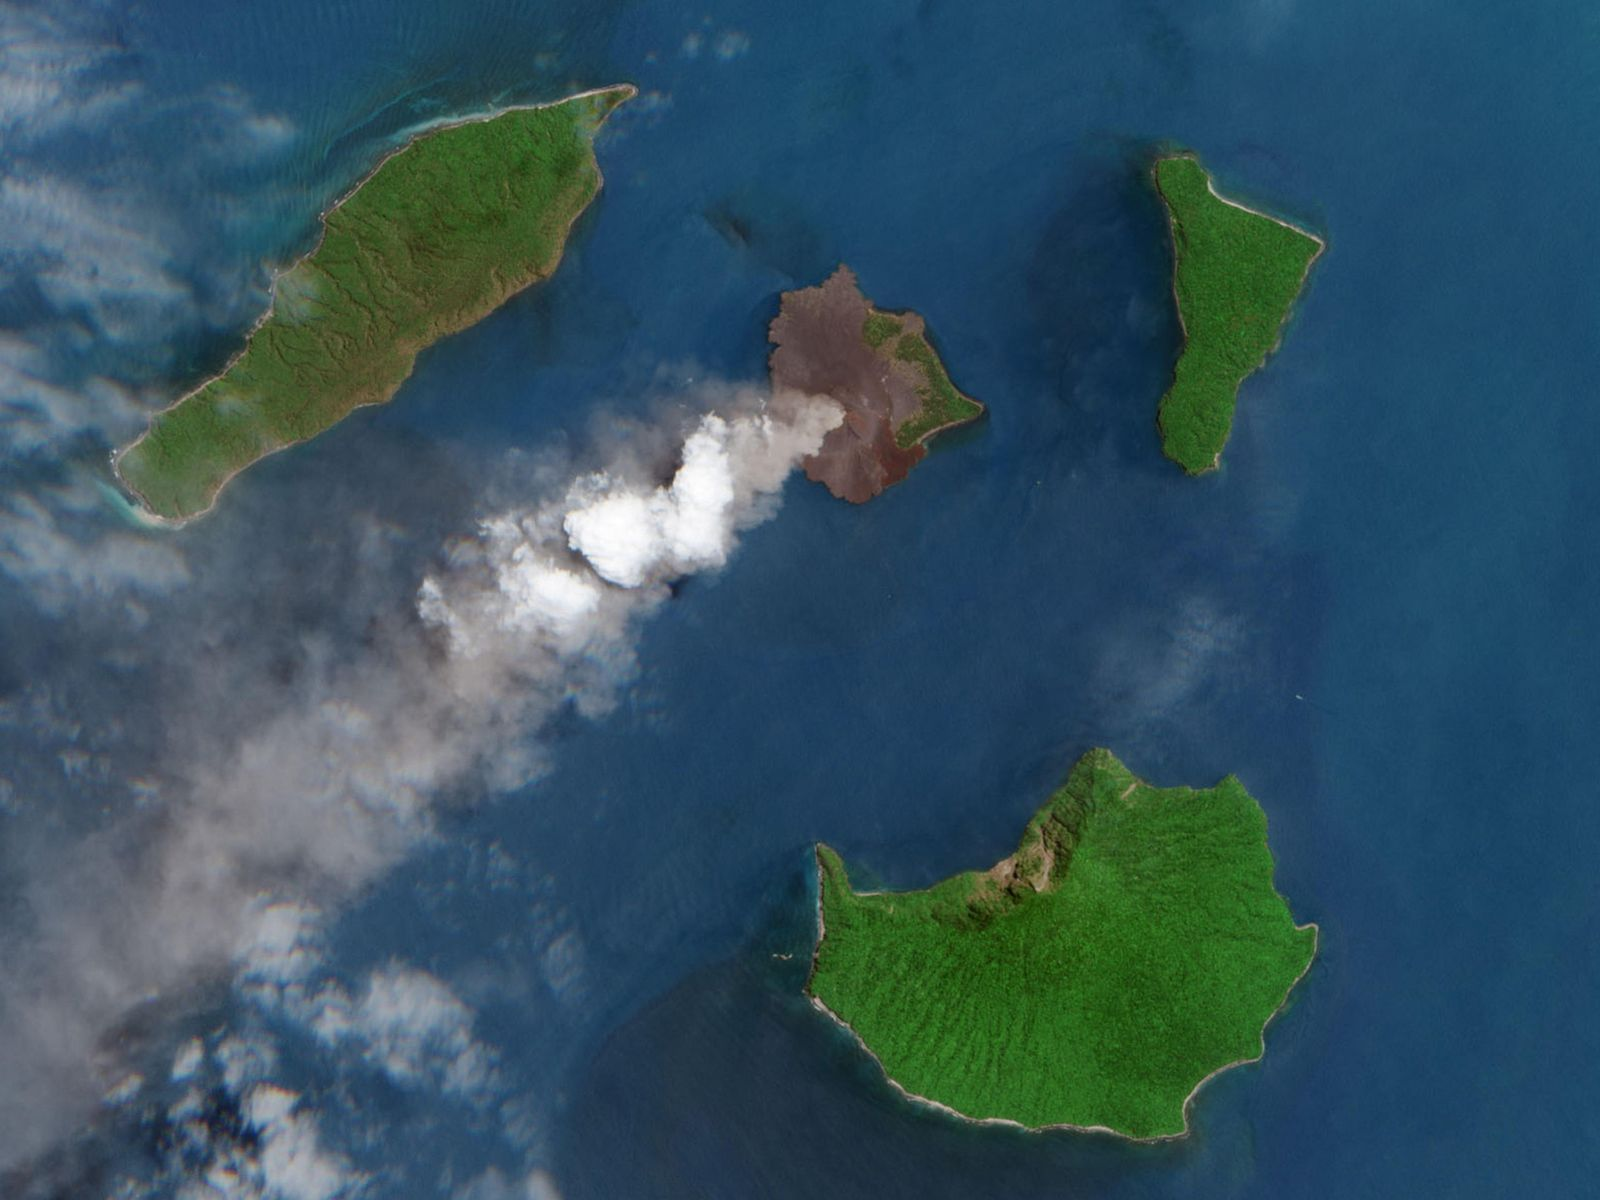 In September 2018, the MultiSpectral Instrument (MSI) on the European Space Agency's Sentinel-2 acquired this detailed ...